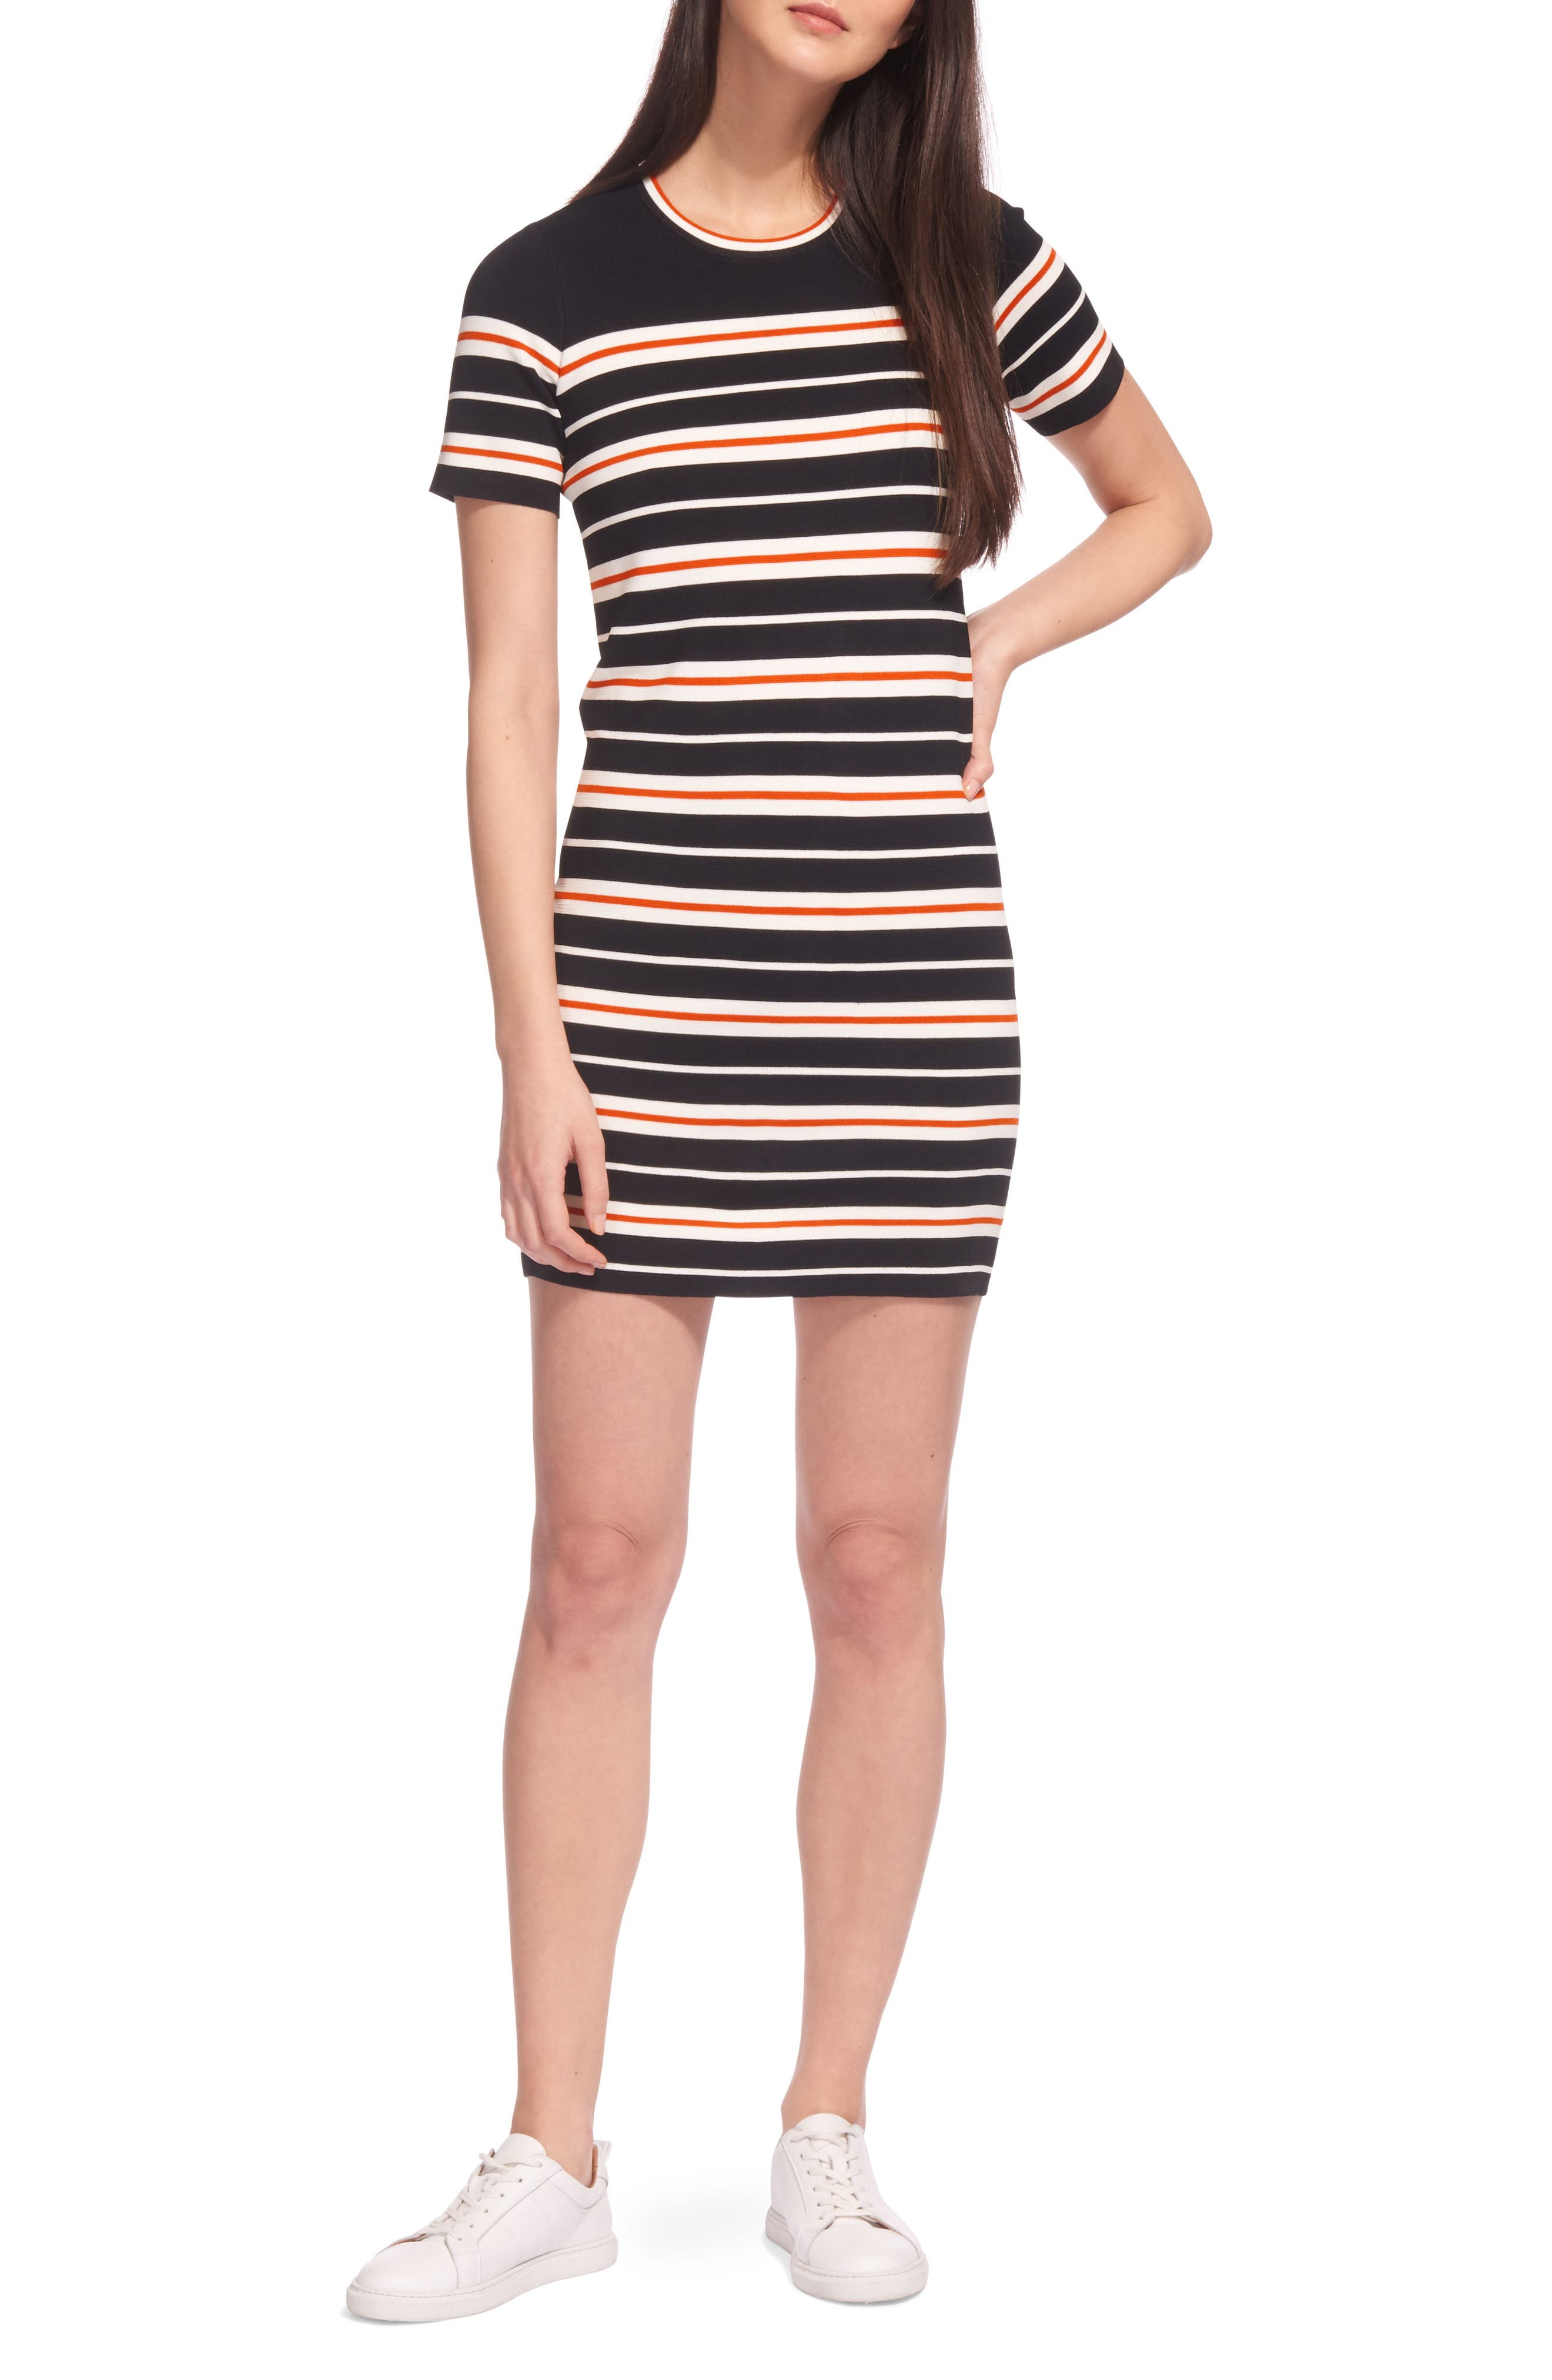 Milano Stripe Knit Dress,                             Main thumbnail 1, color,                             001